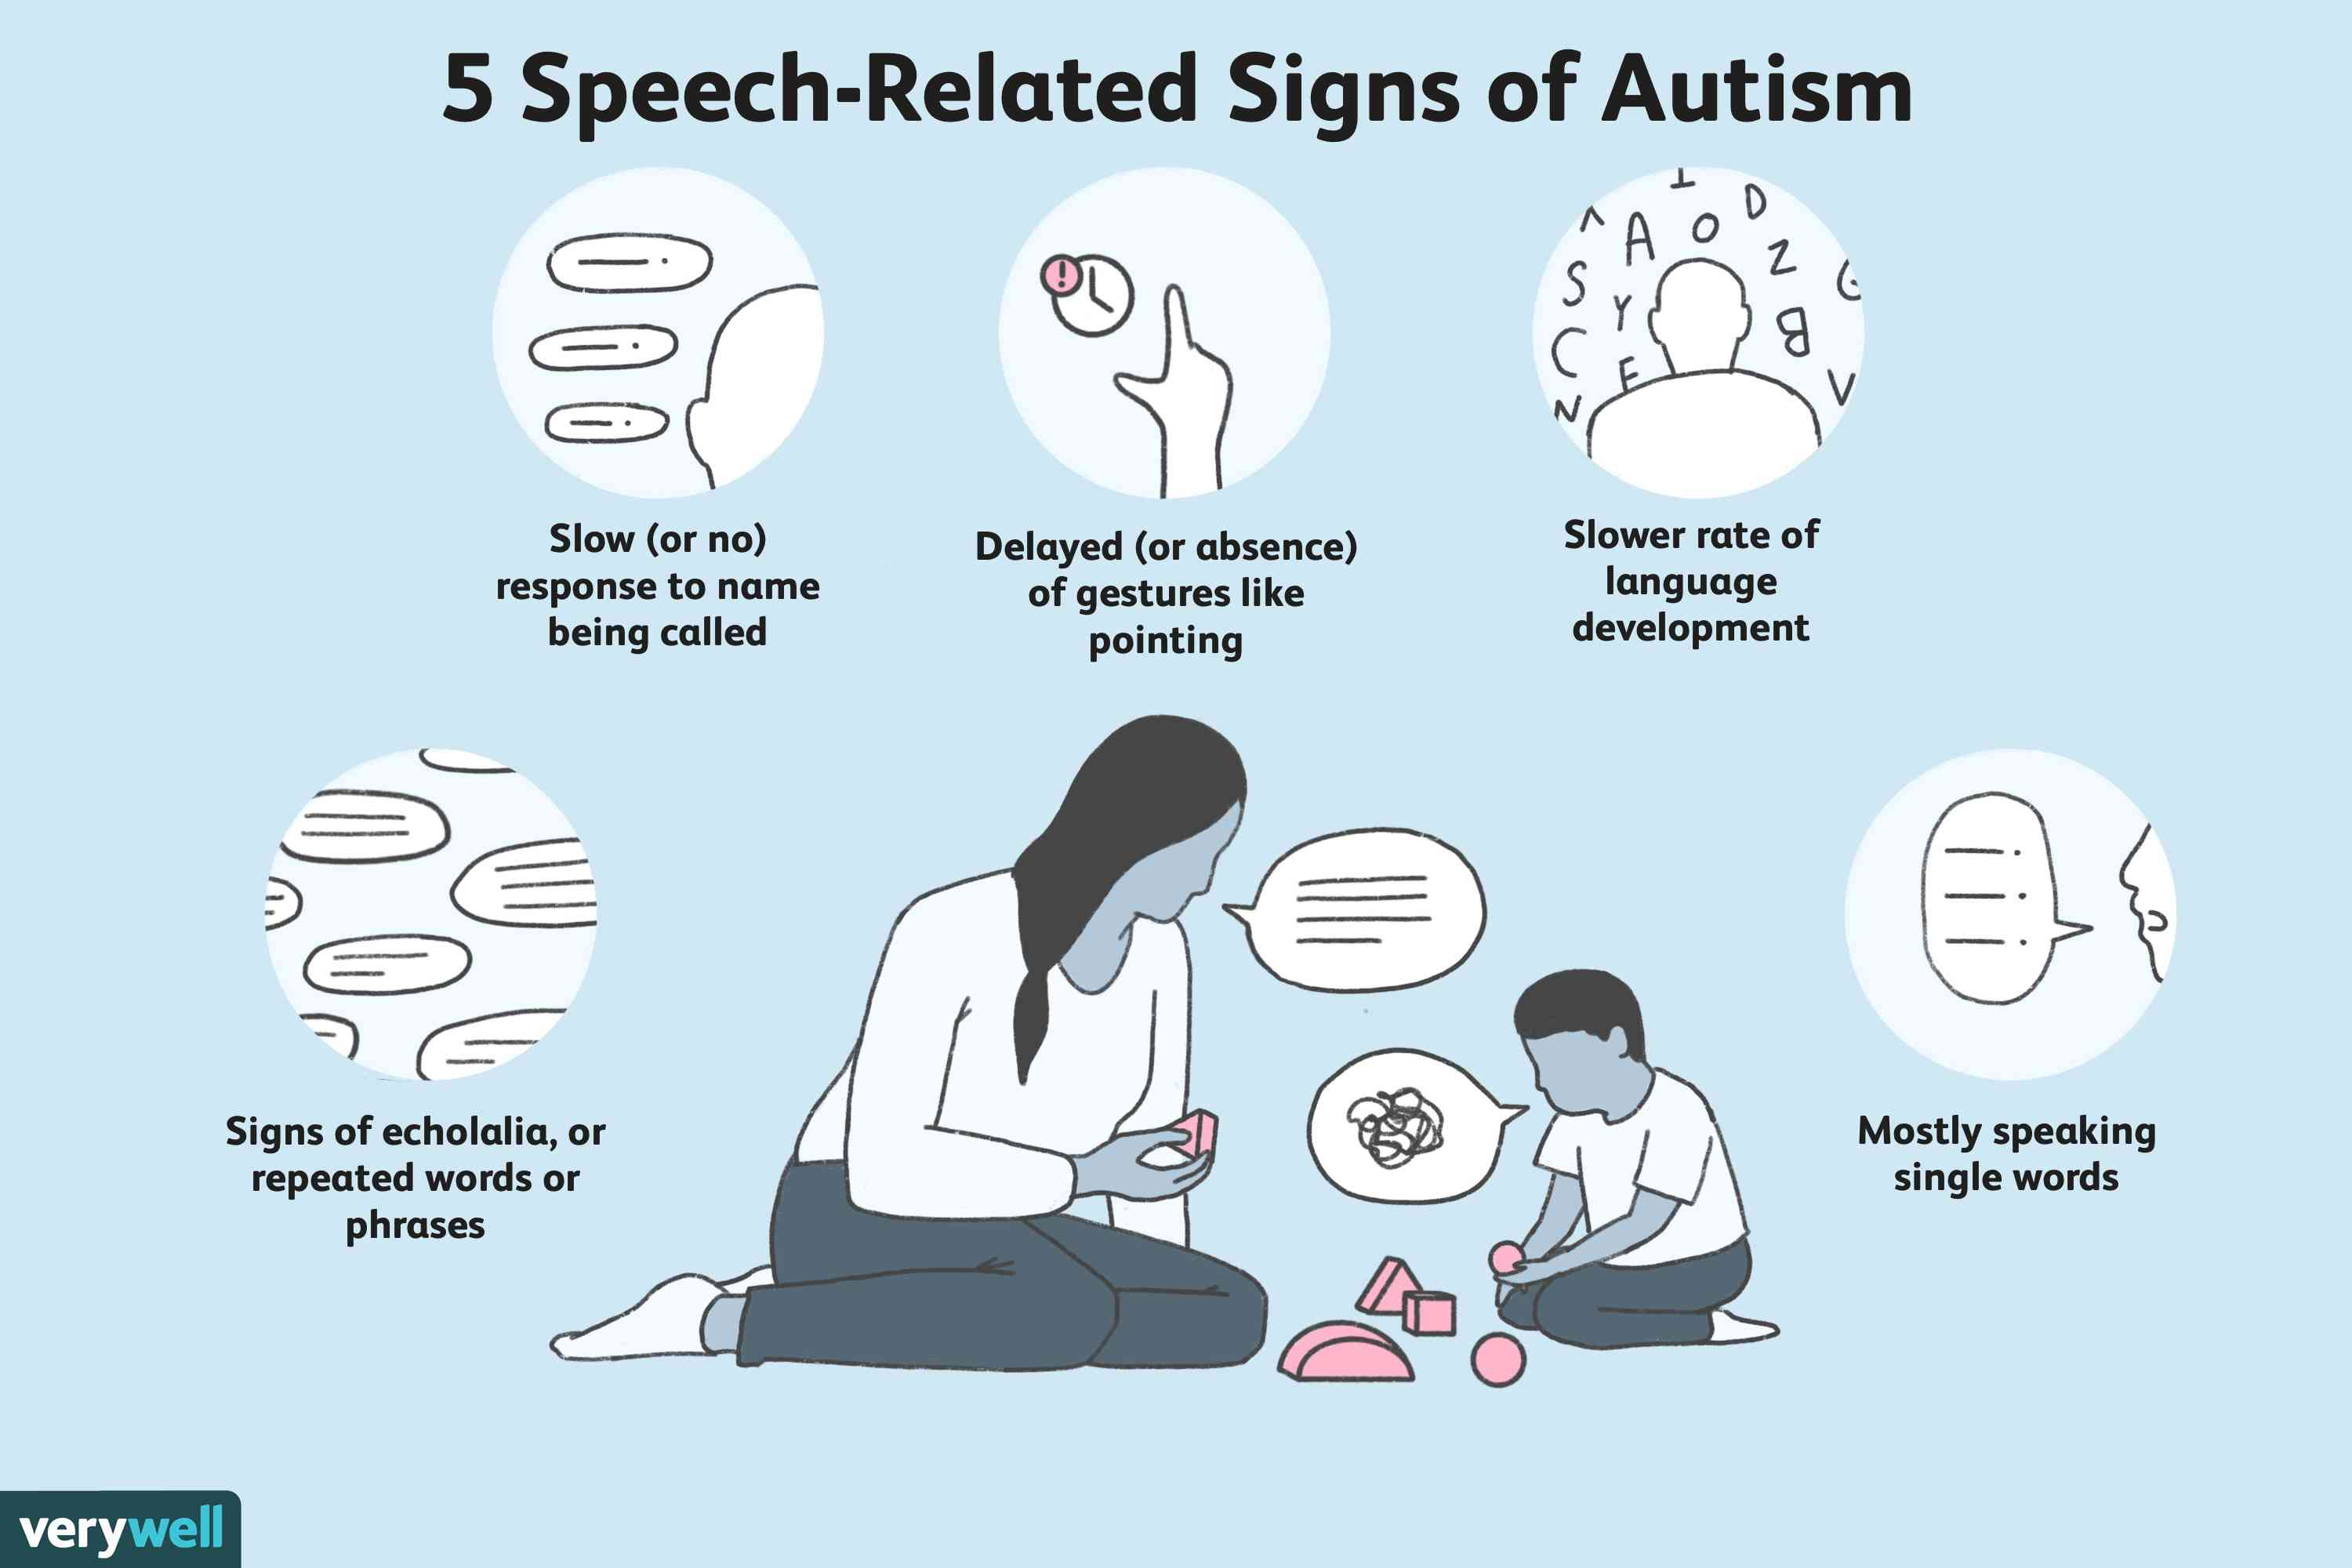 5 Speech-Related Signs of Autism